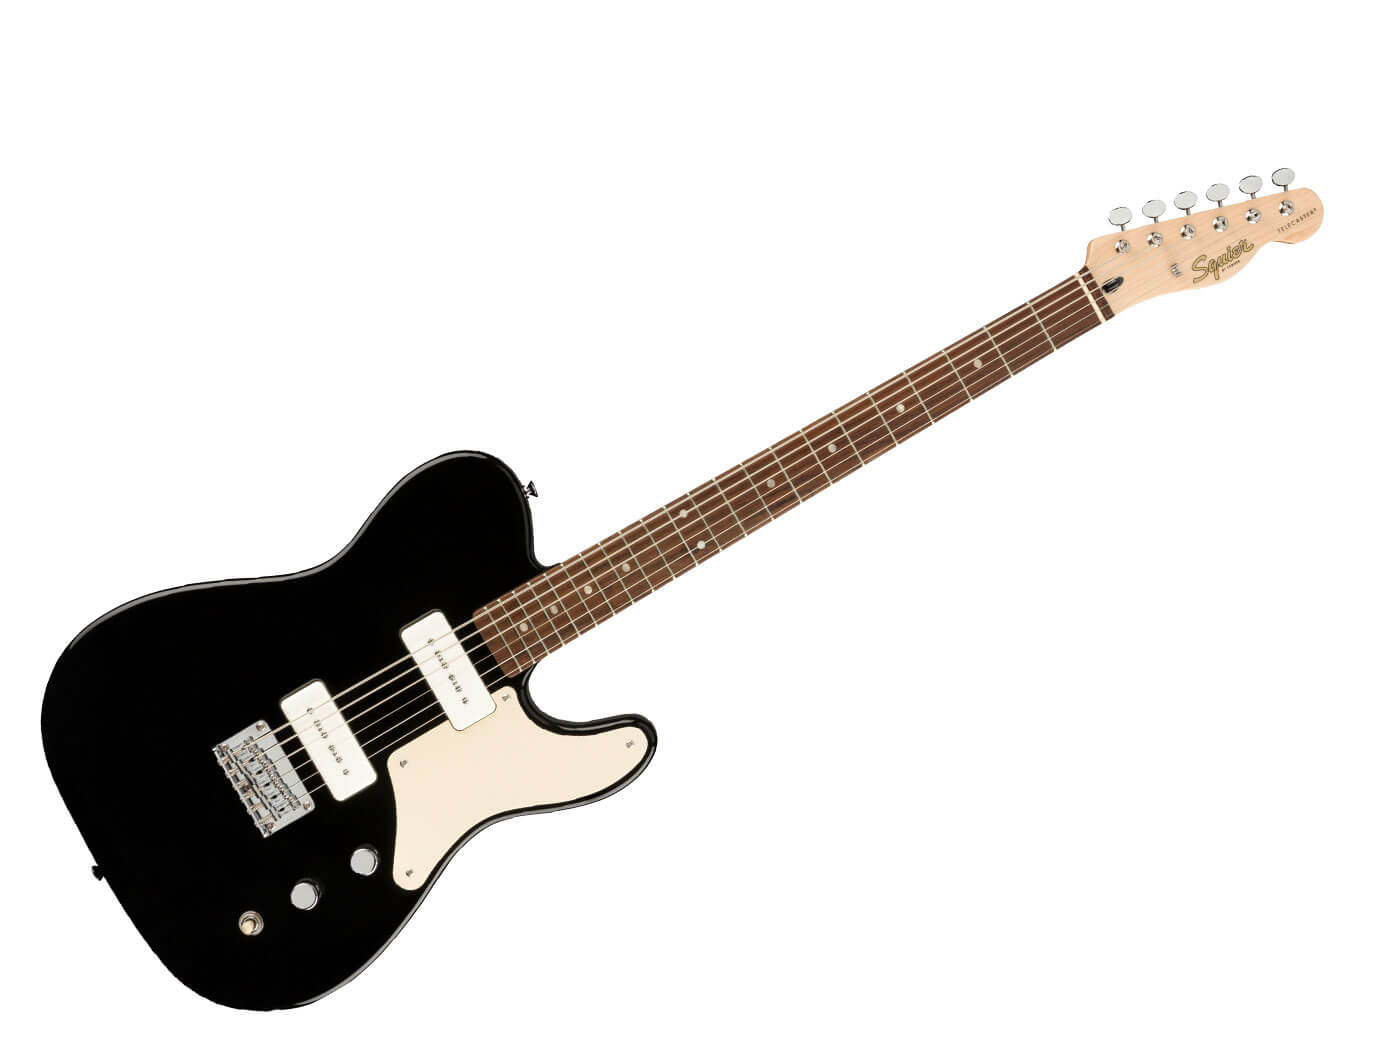 The Squier Paranormal Baritone Telecaster